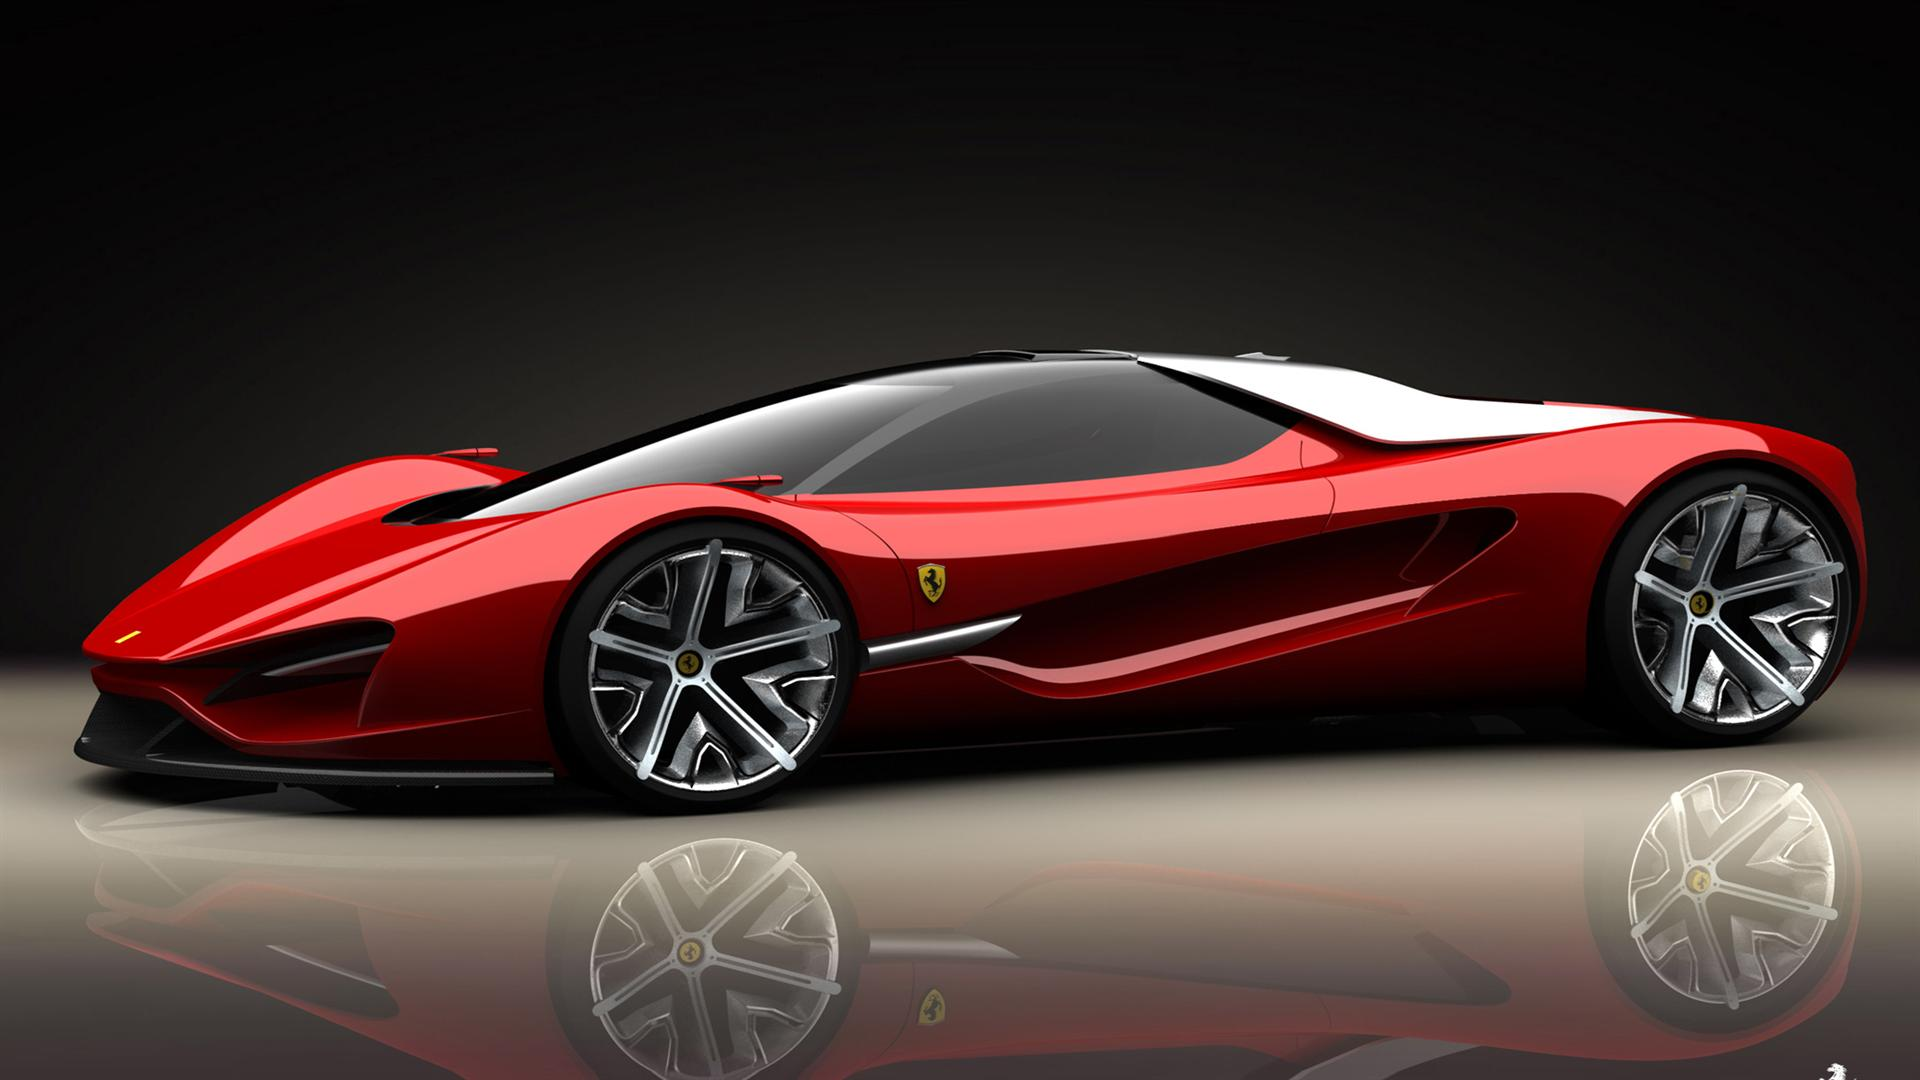 Most Expensive Car In The World >> Ferrari Most Expensive Cars-Wallpapers